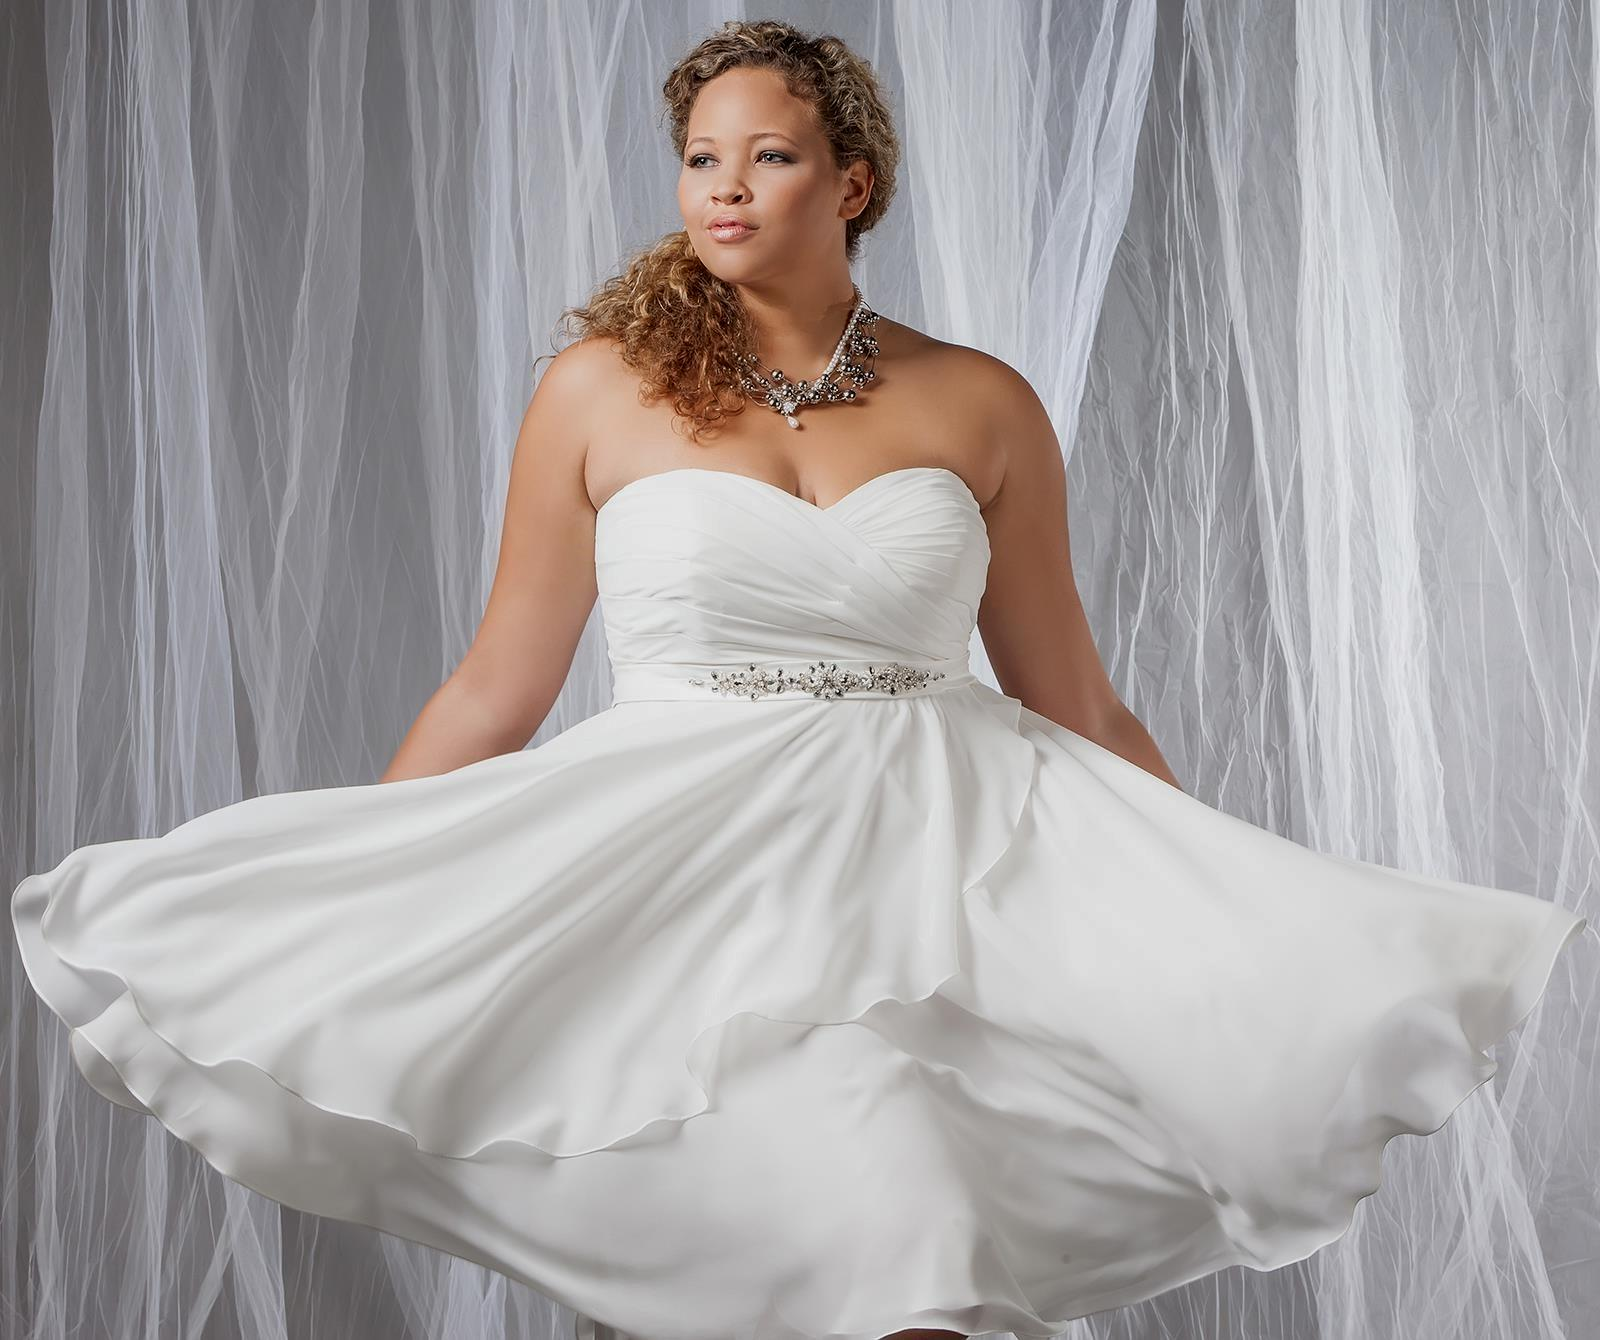 40 Stylish Wedding Dresses For Plus Size Women 2019 Plus Size